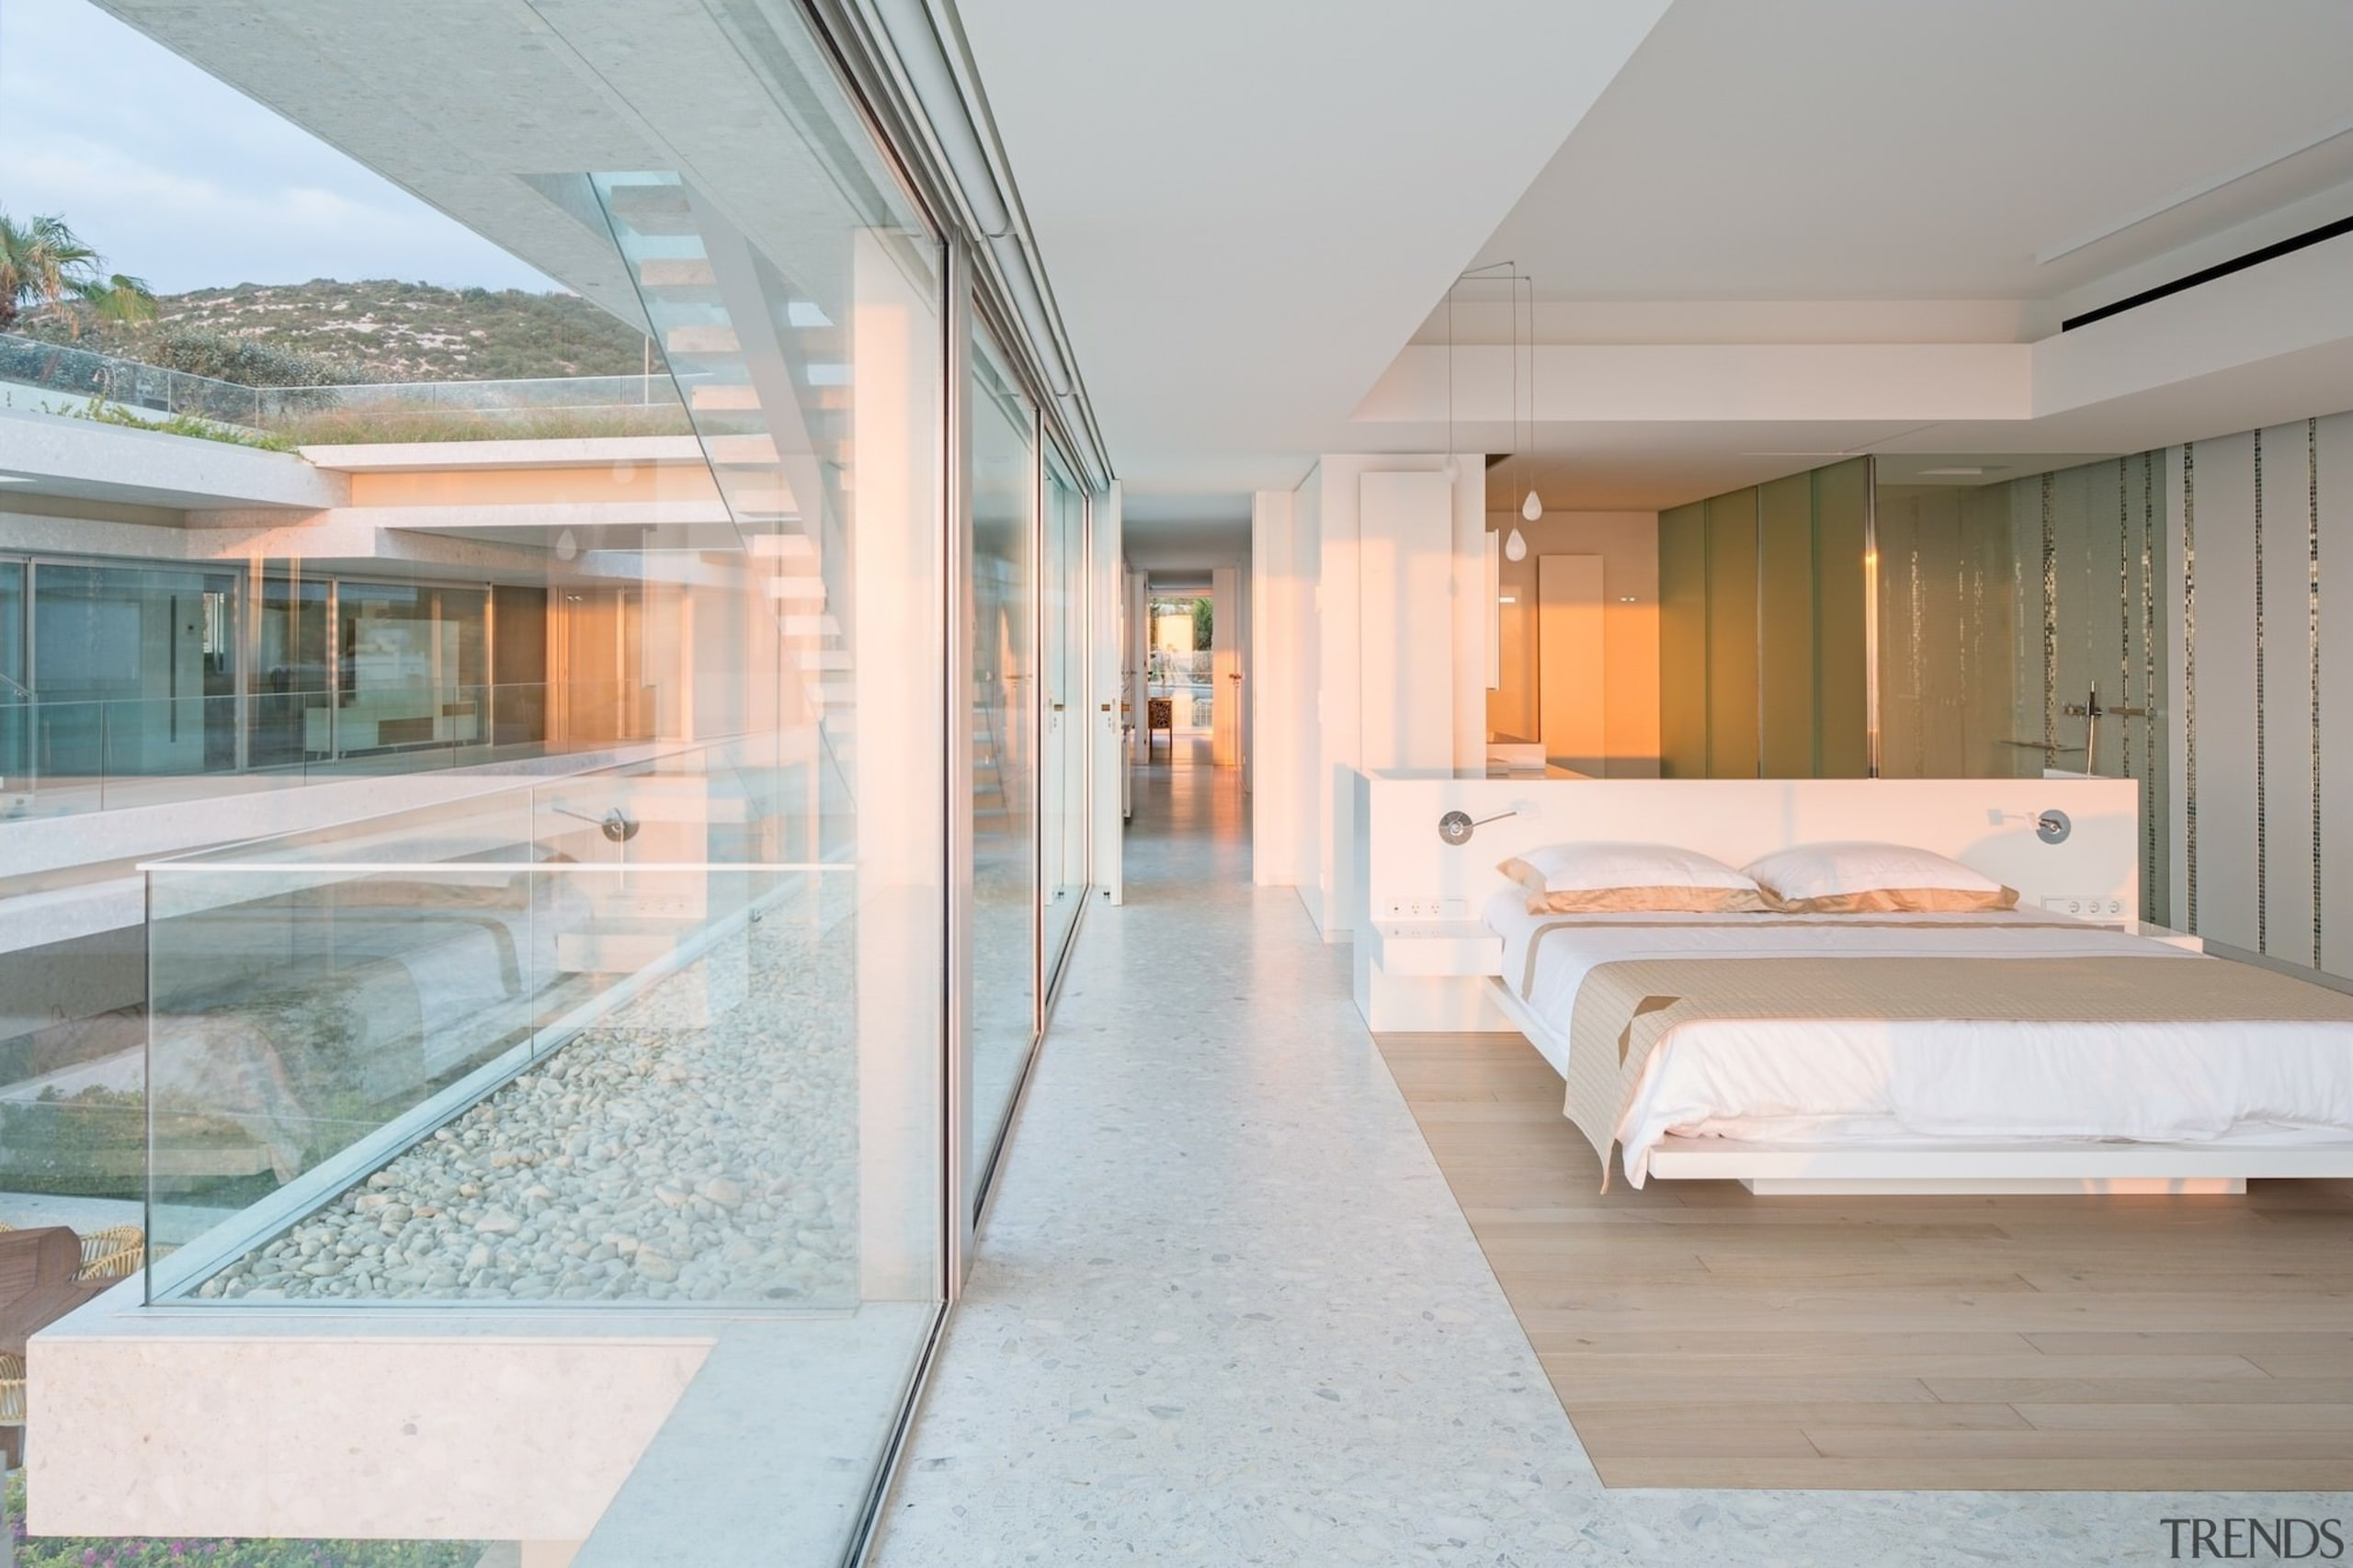 Another one of the bedrooms with a bathroom architecture, ceiling, estate, house, interior design, real estate, gray